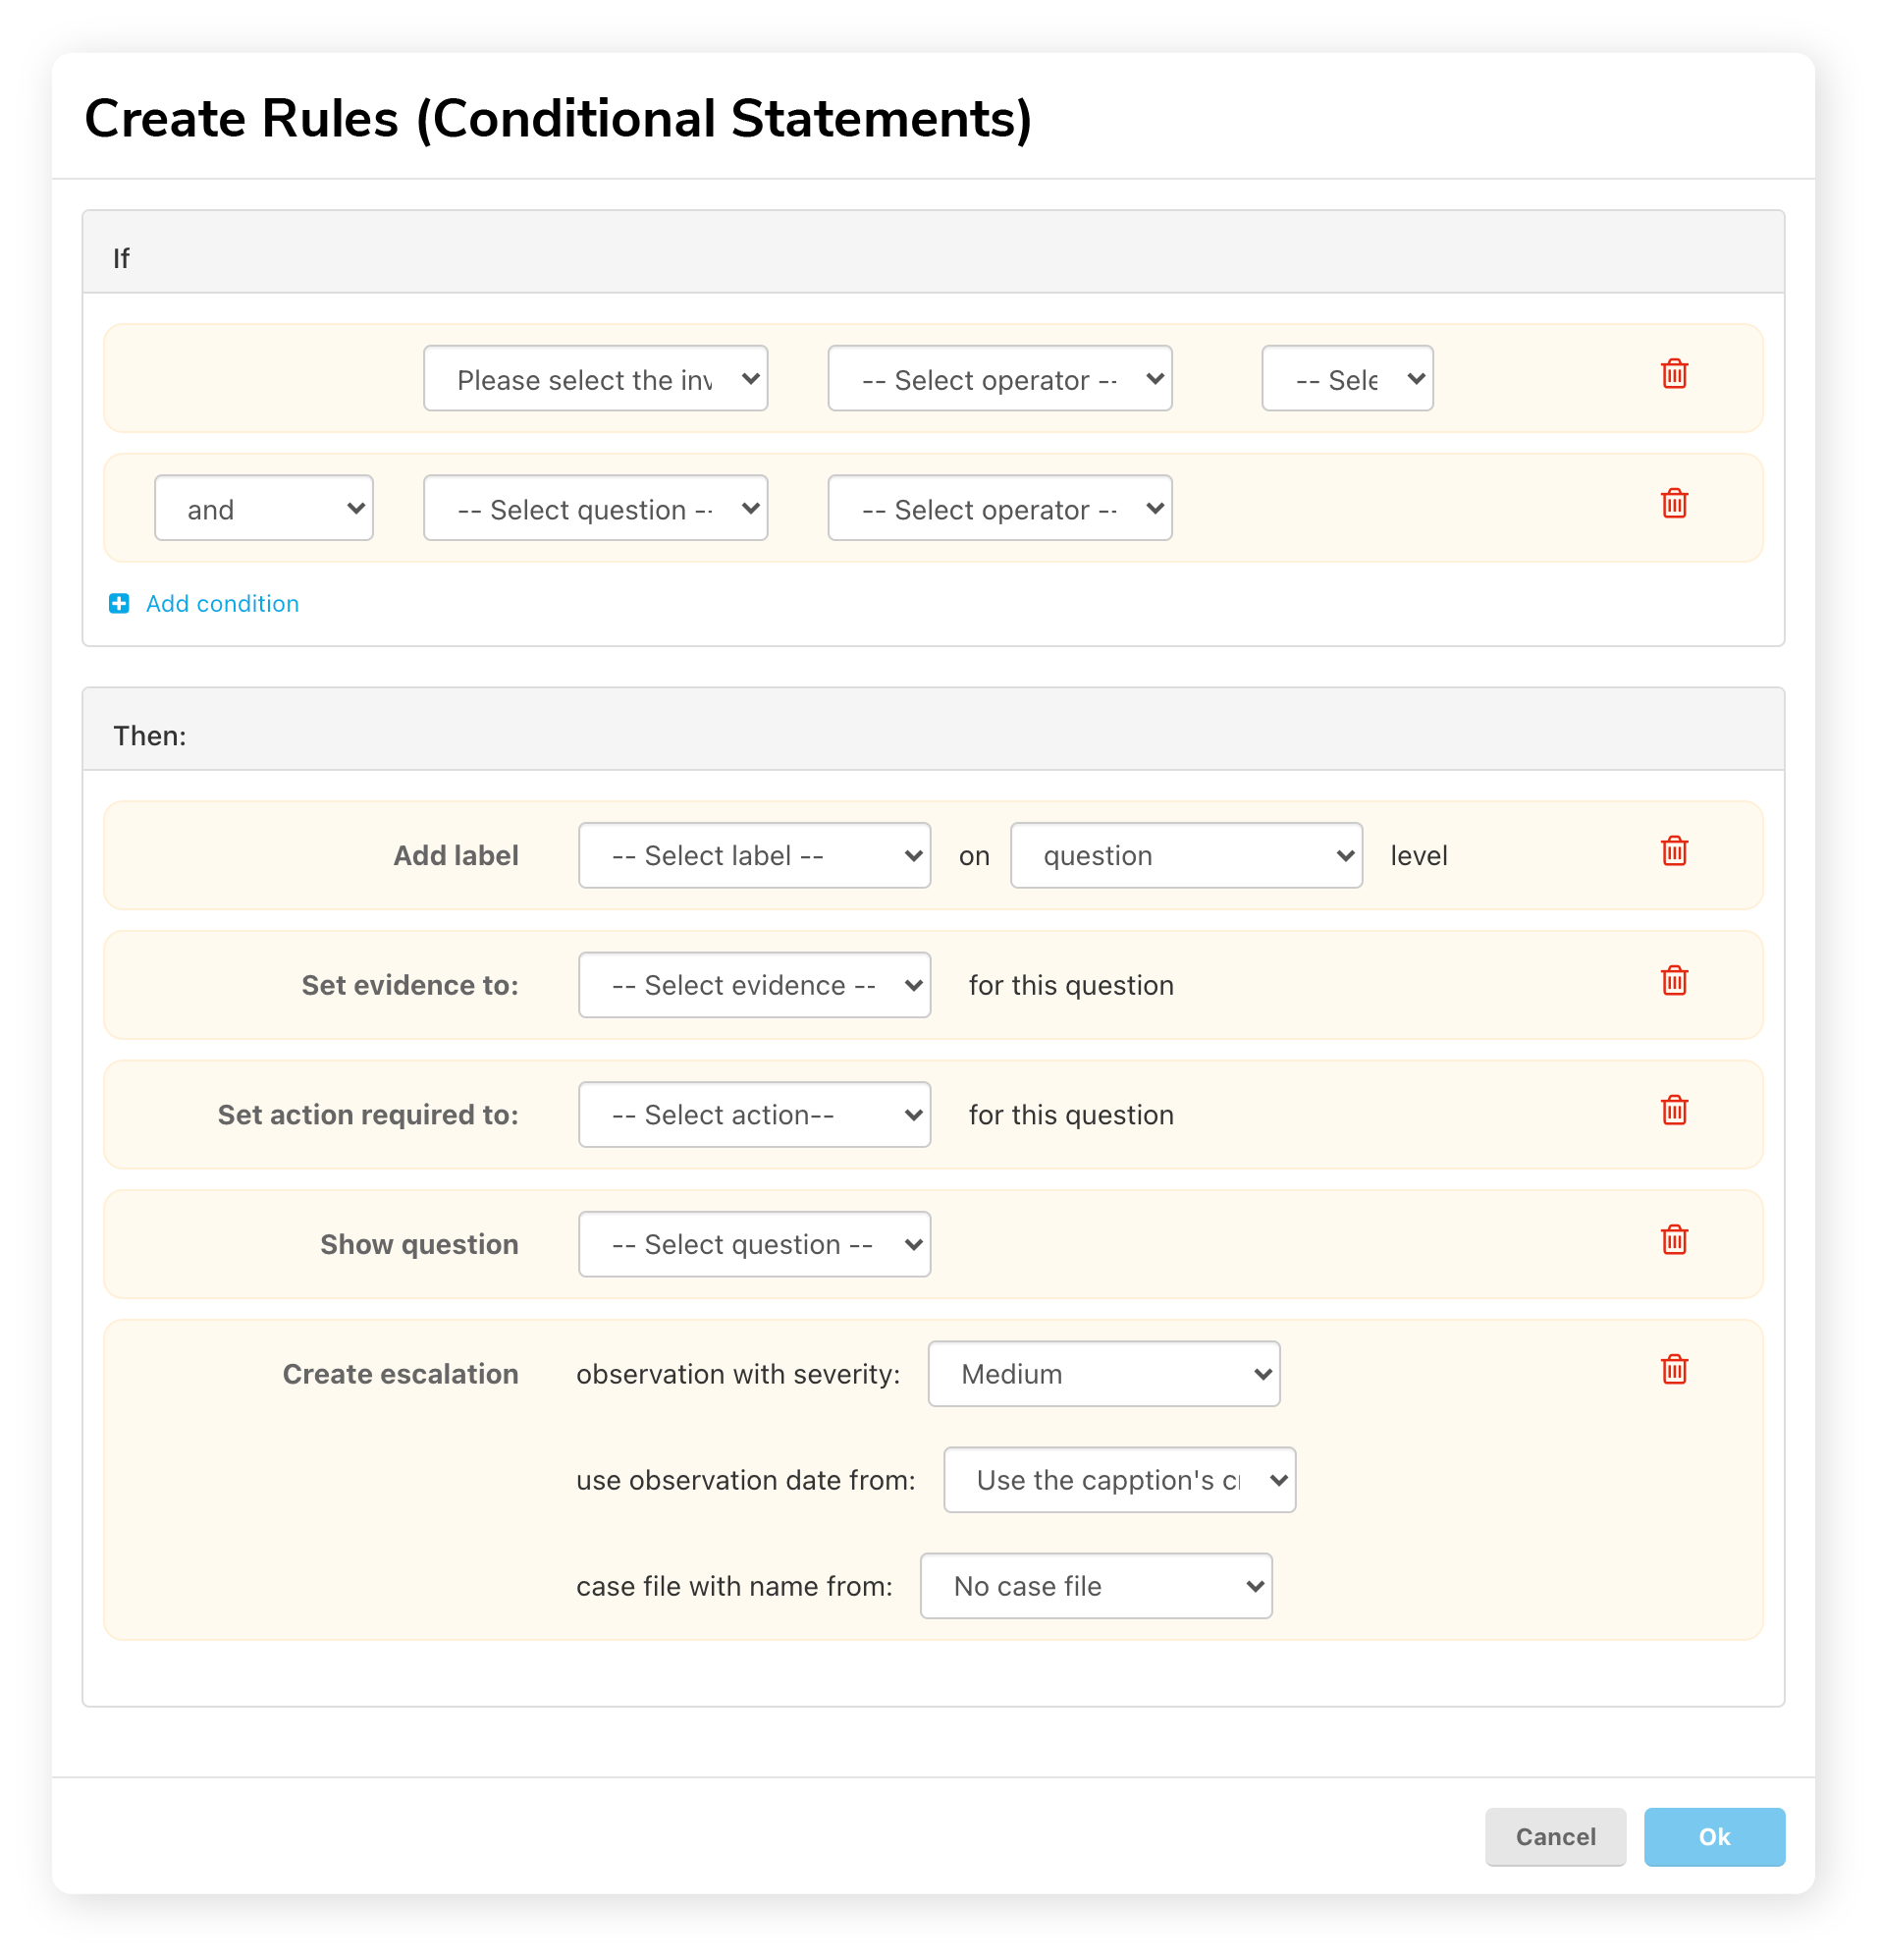 Rules Conditional Statements